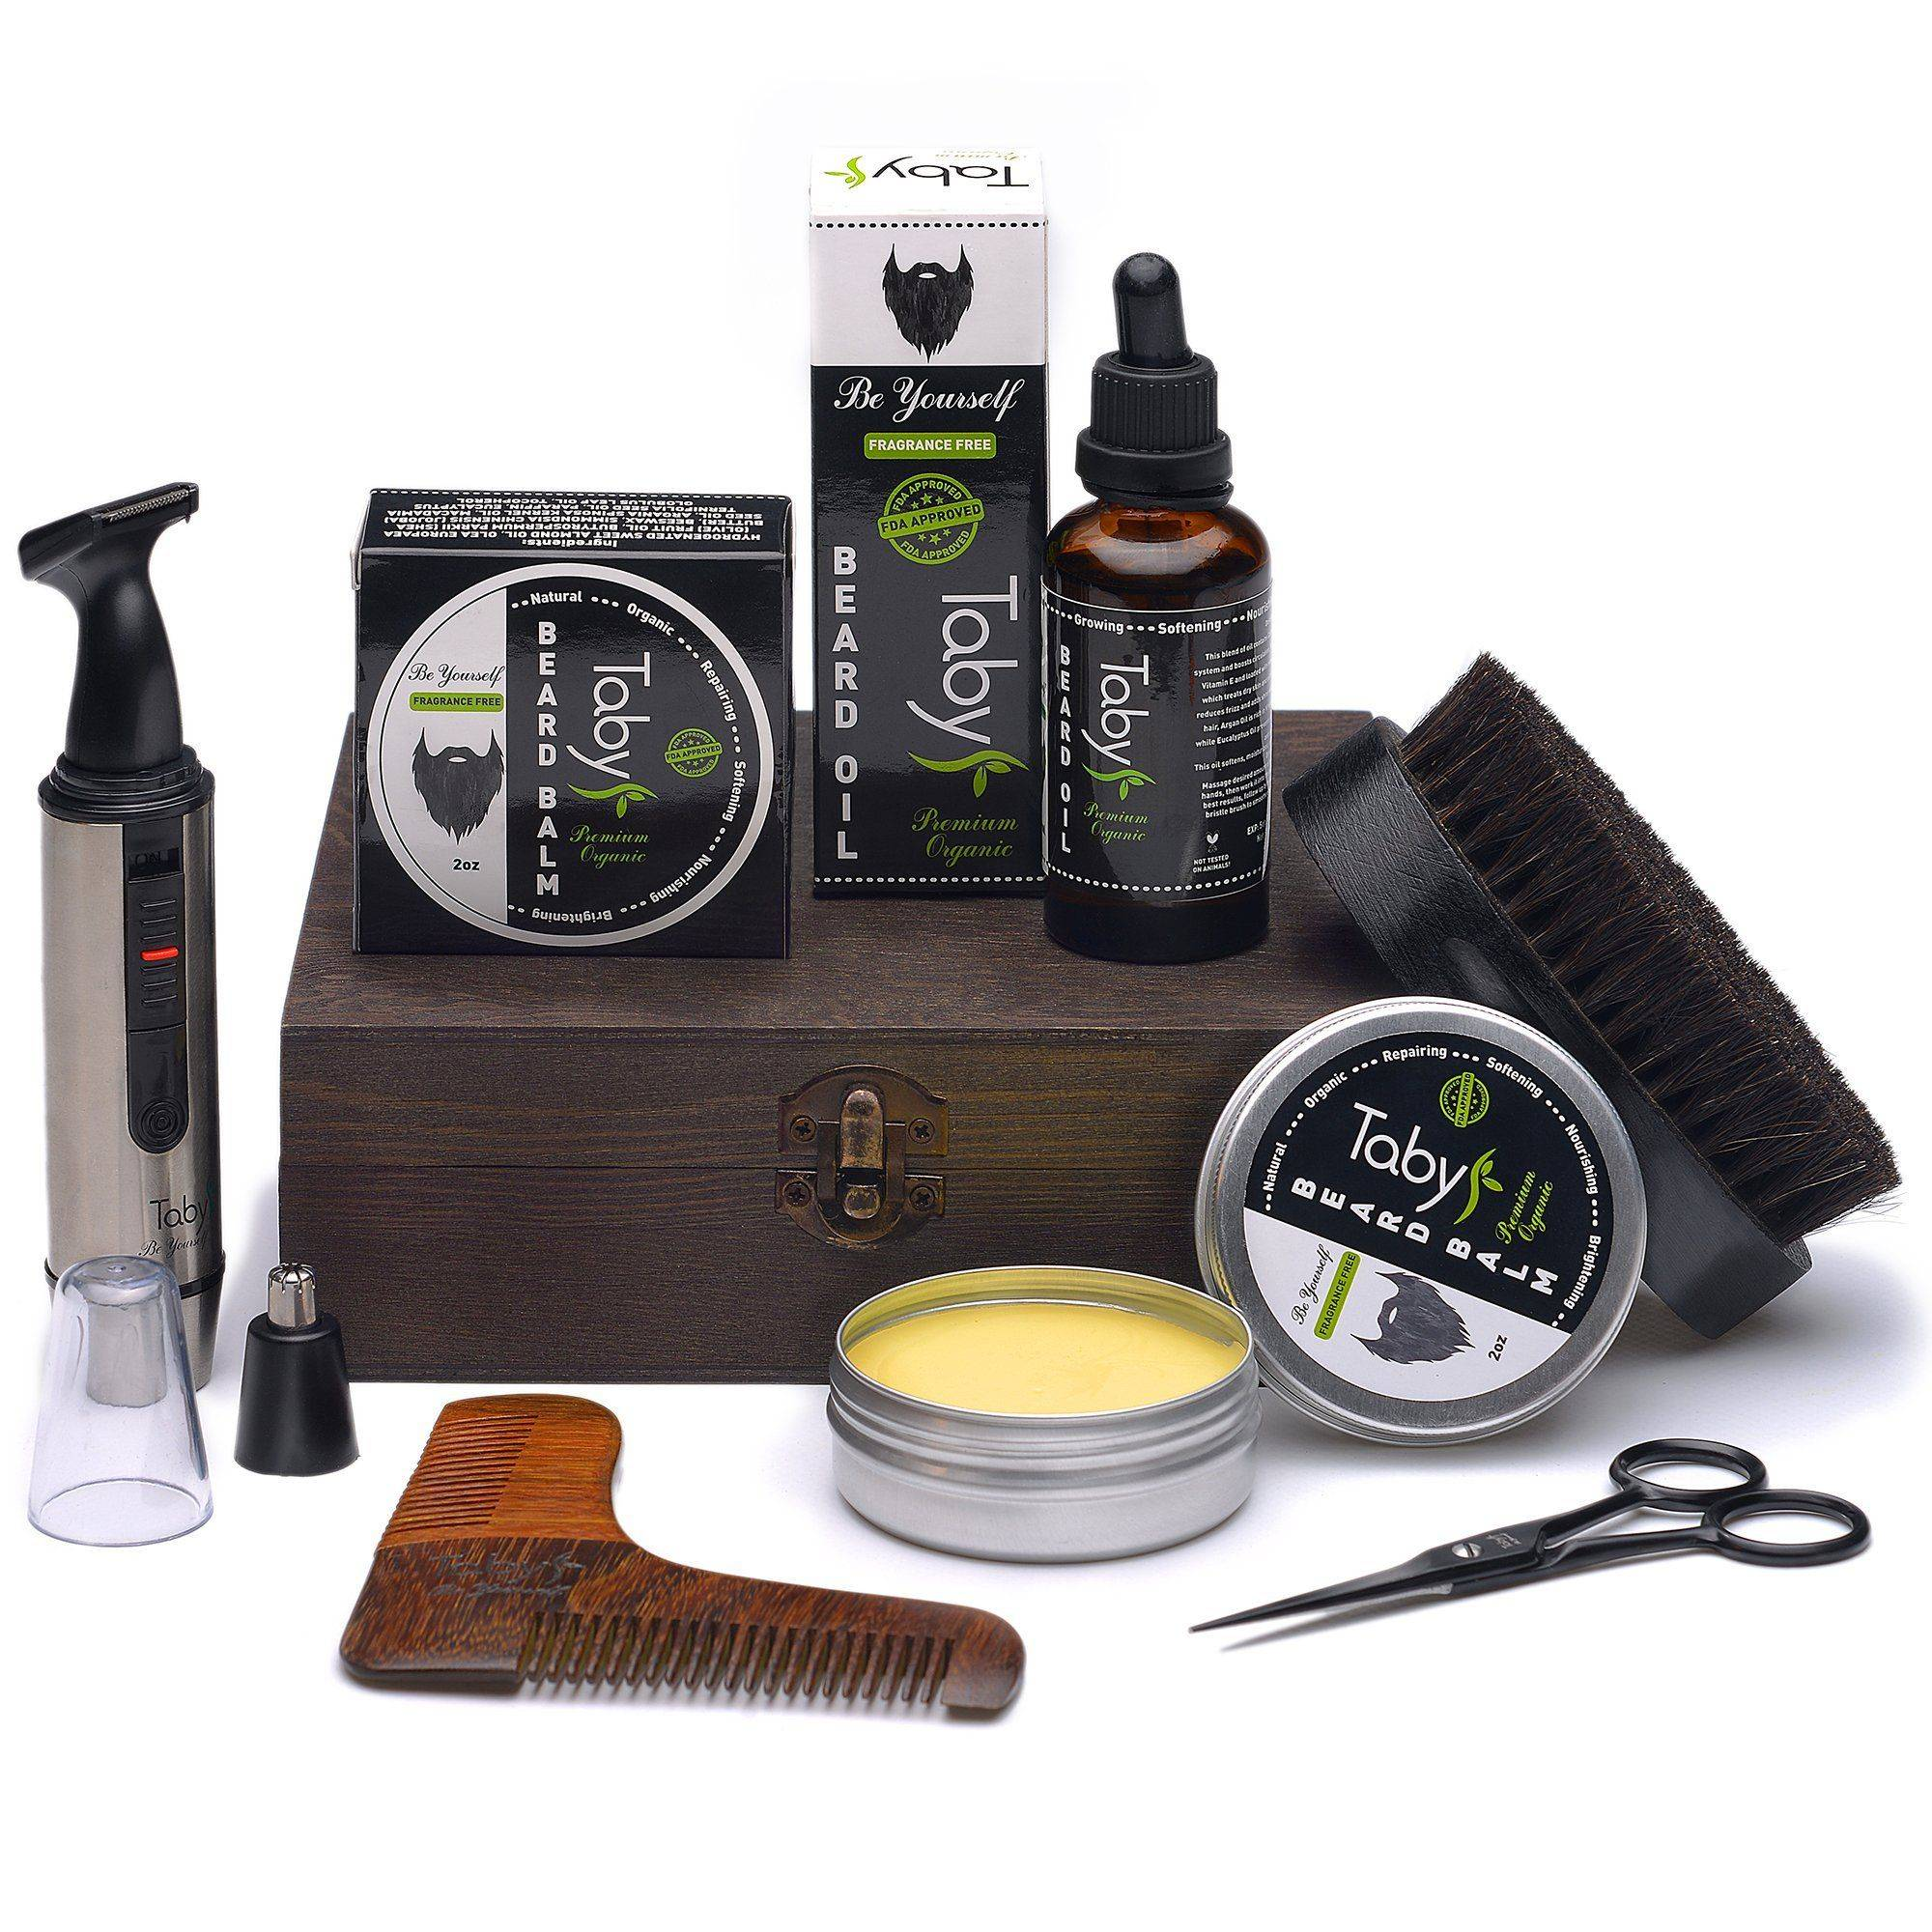 Magenta Misty Beard Grooming and Trimming Set for Men